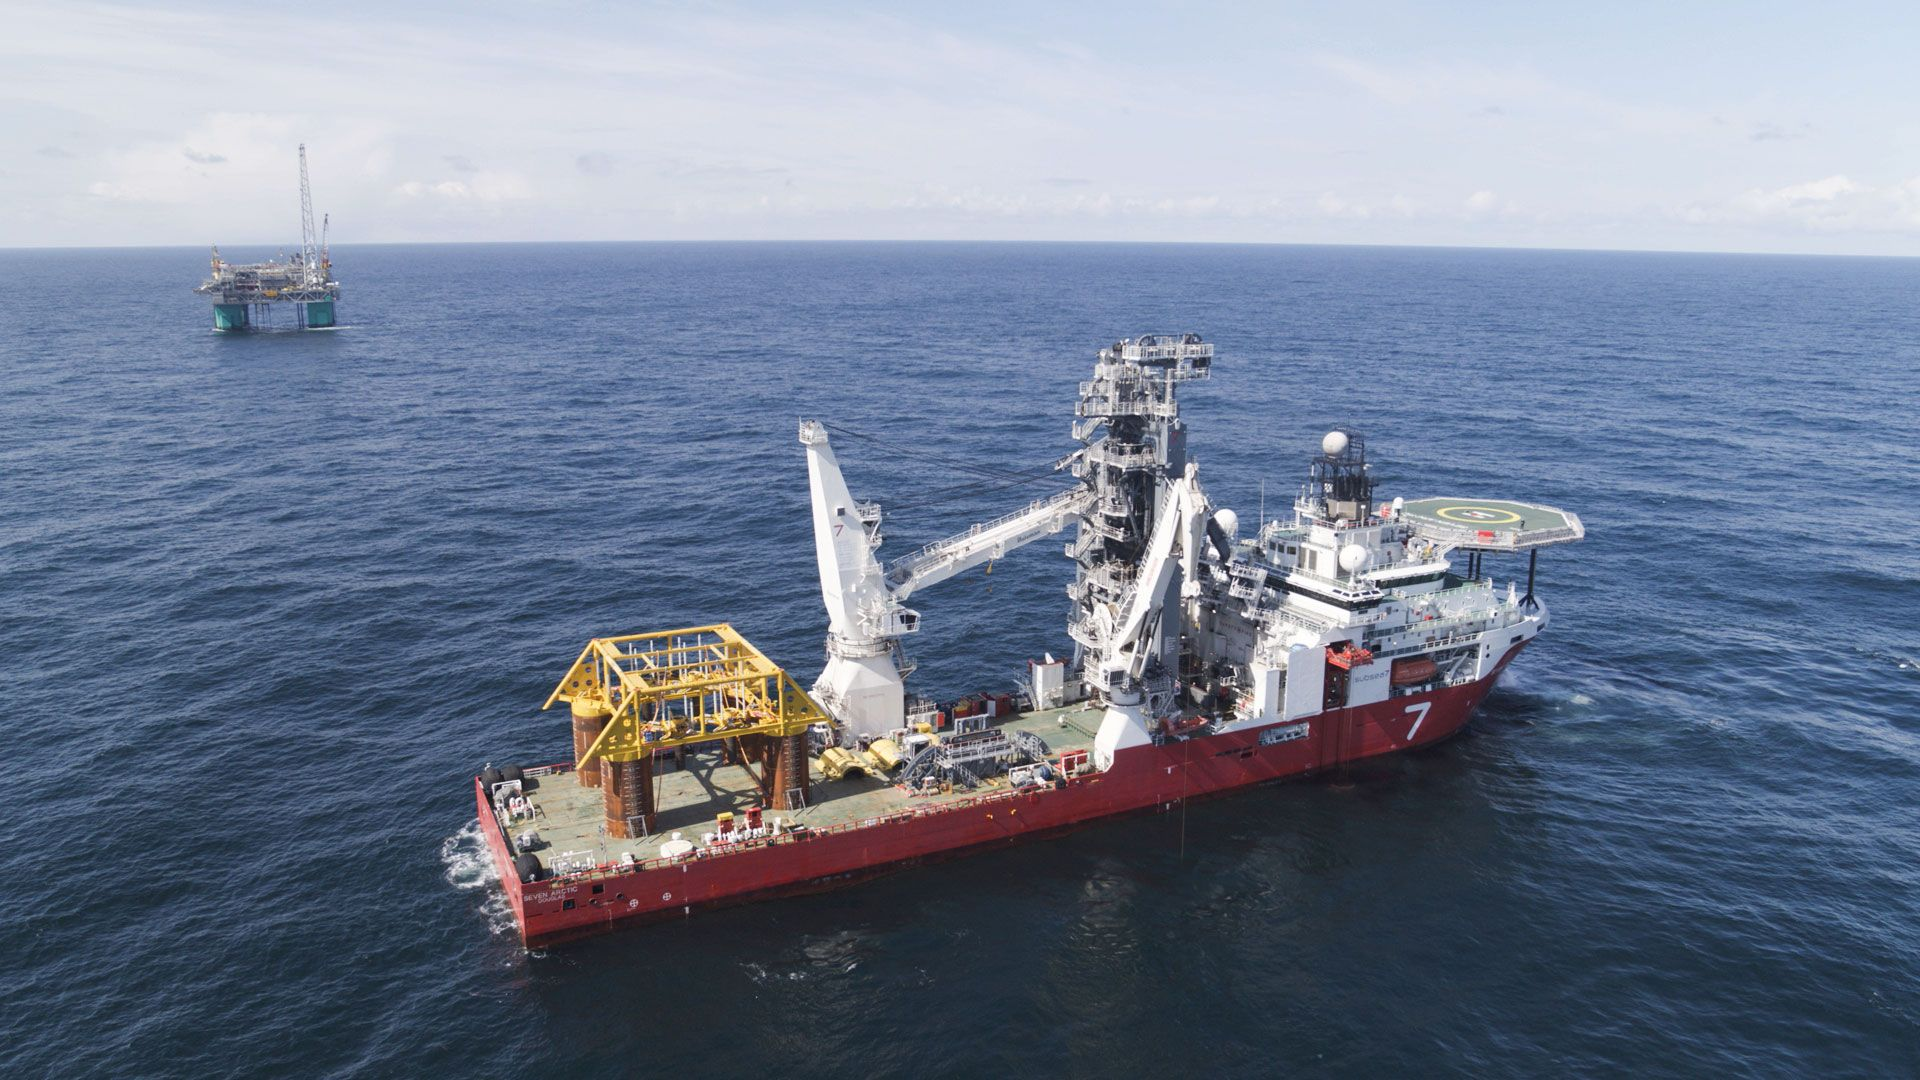 Wintershall Dea platform Gjøa ship Norwegian Sea